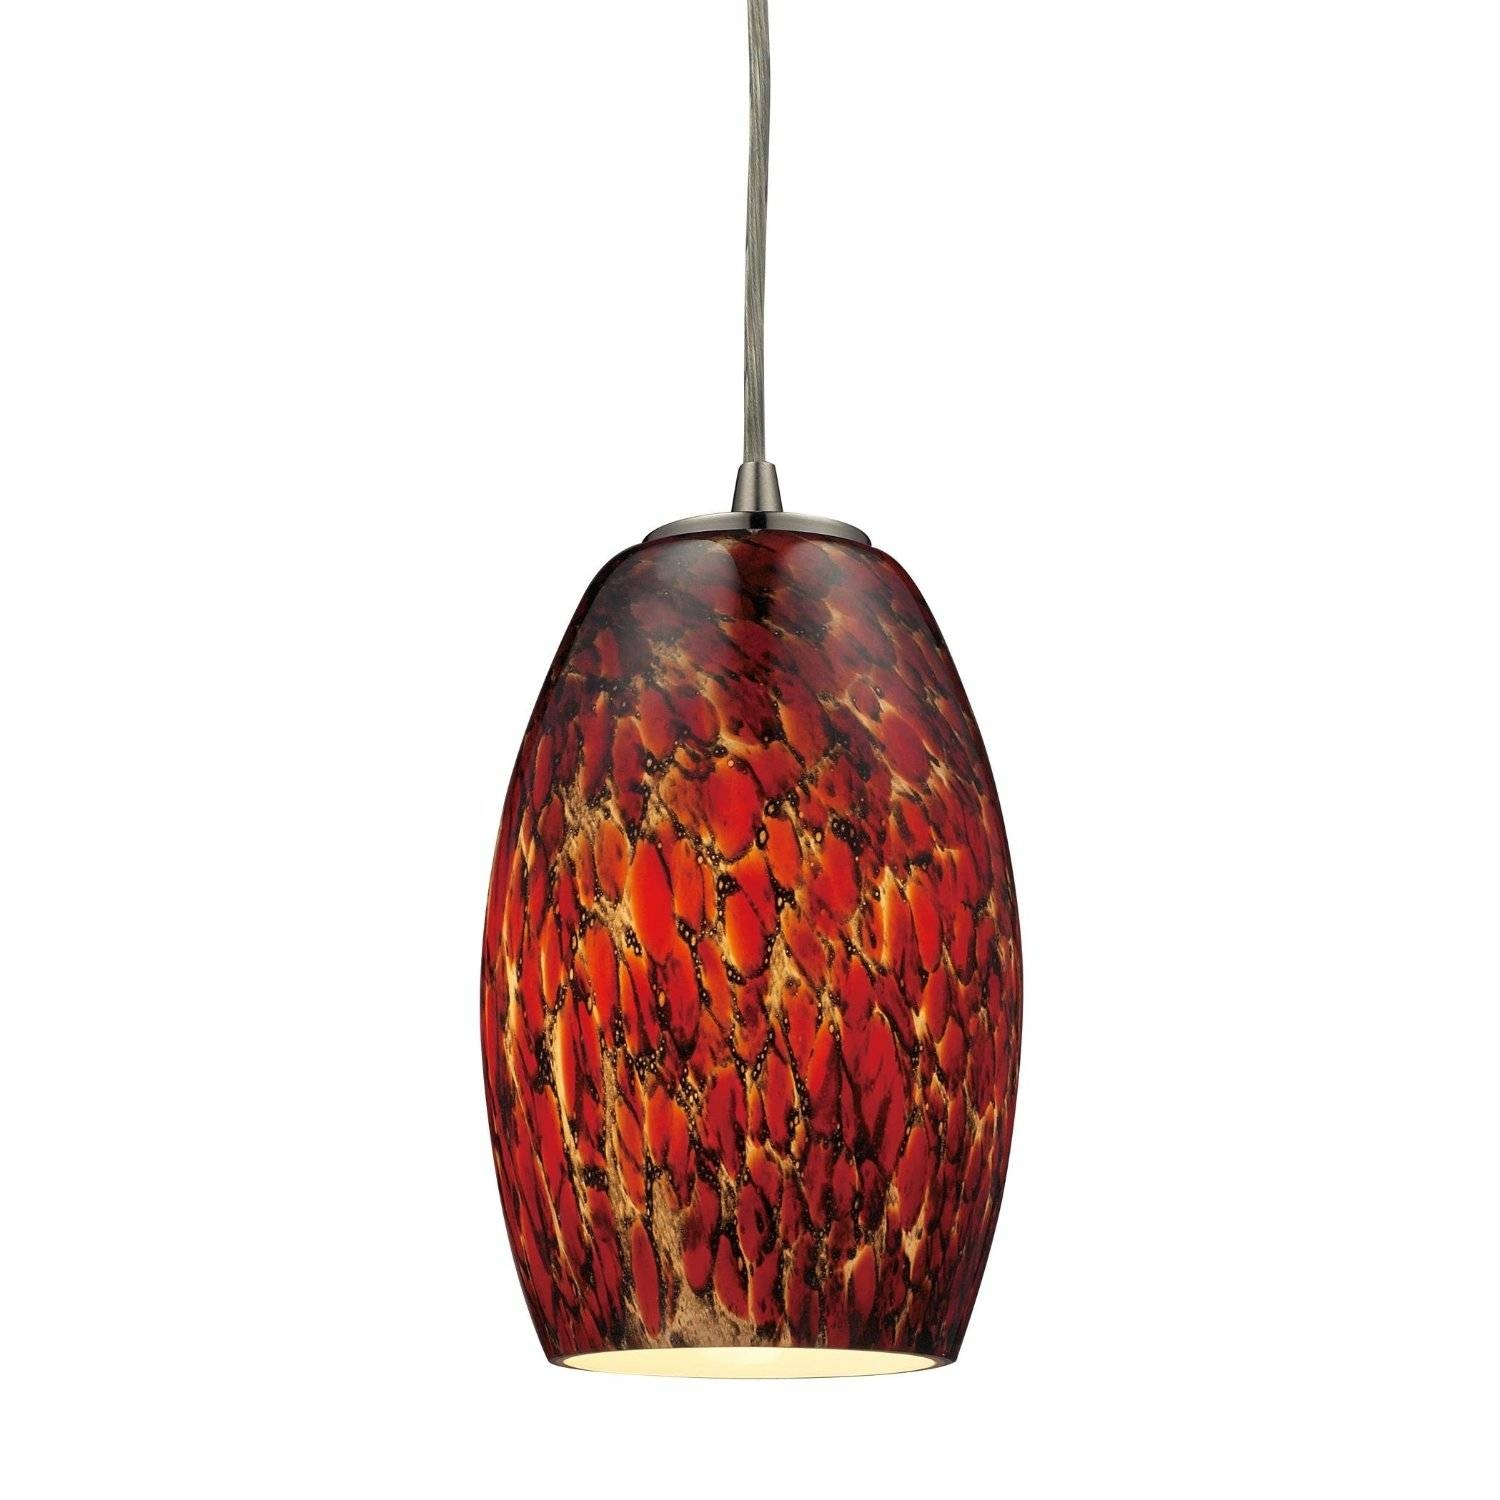 Pendant Lighting : New Excellent Hand Blown Glass Pendant Lights regarding Murano Glass Pendant Lights (Image 13 of 15)